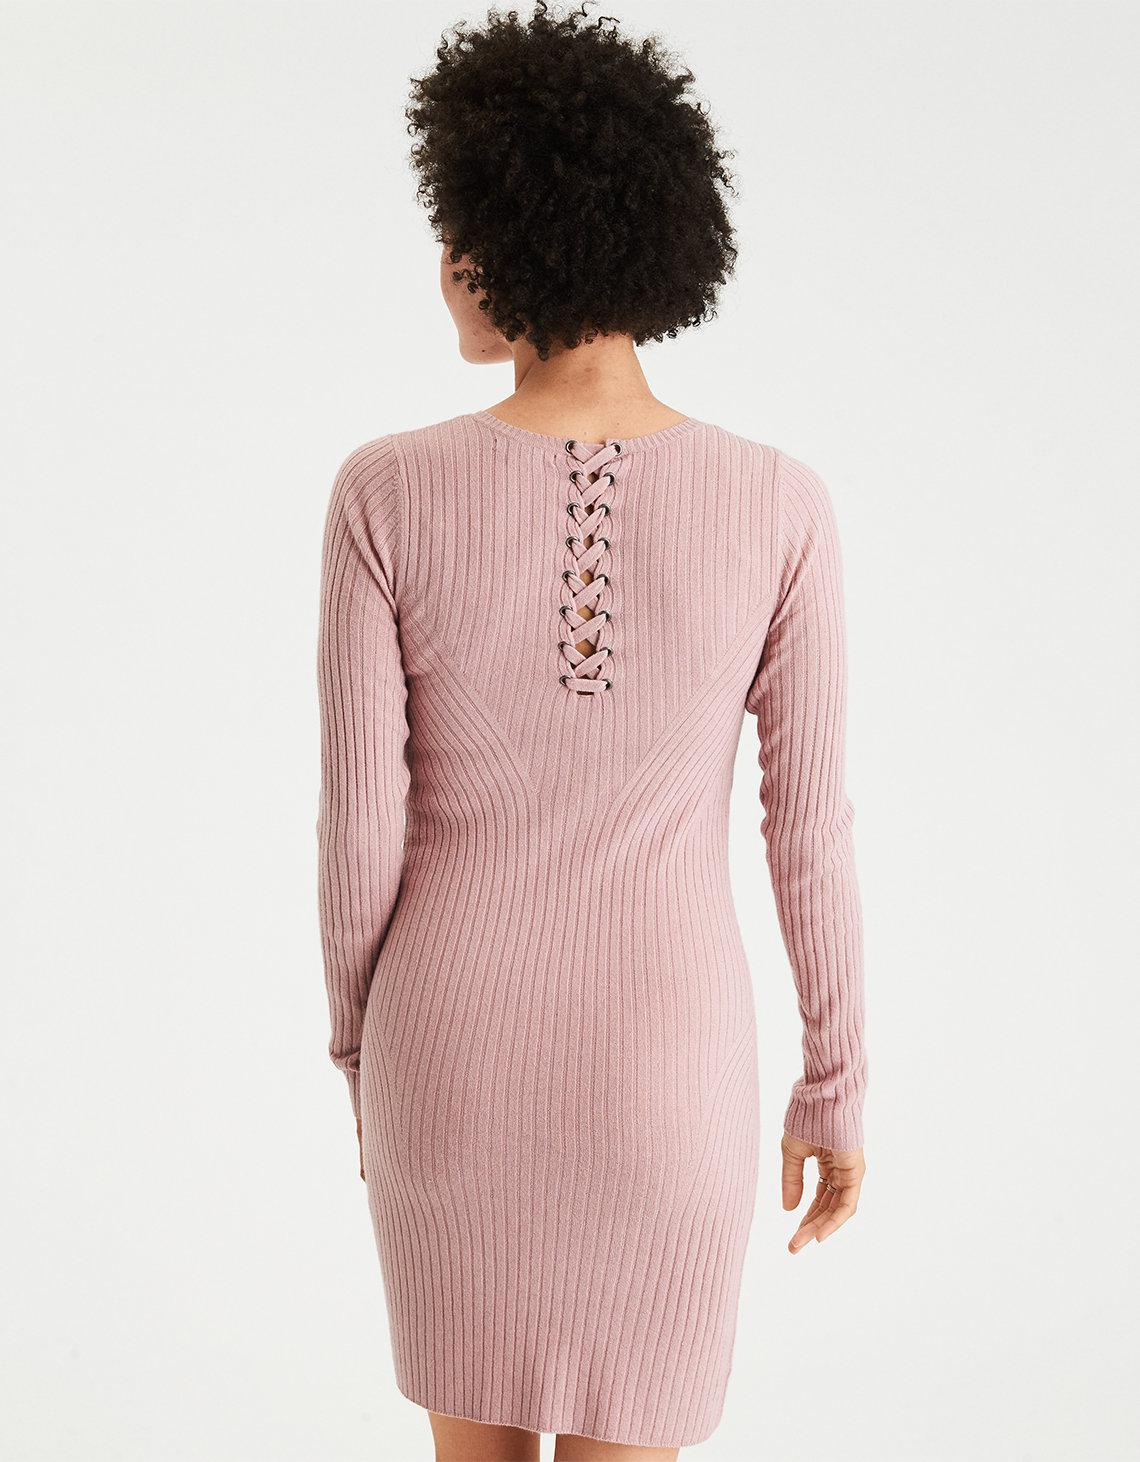 3371ebea9d0 American Eagle Ae Ahh-mazingly Soft Ribbed Bodycon Sweater Dress in ...